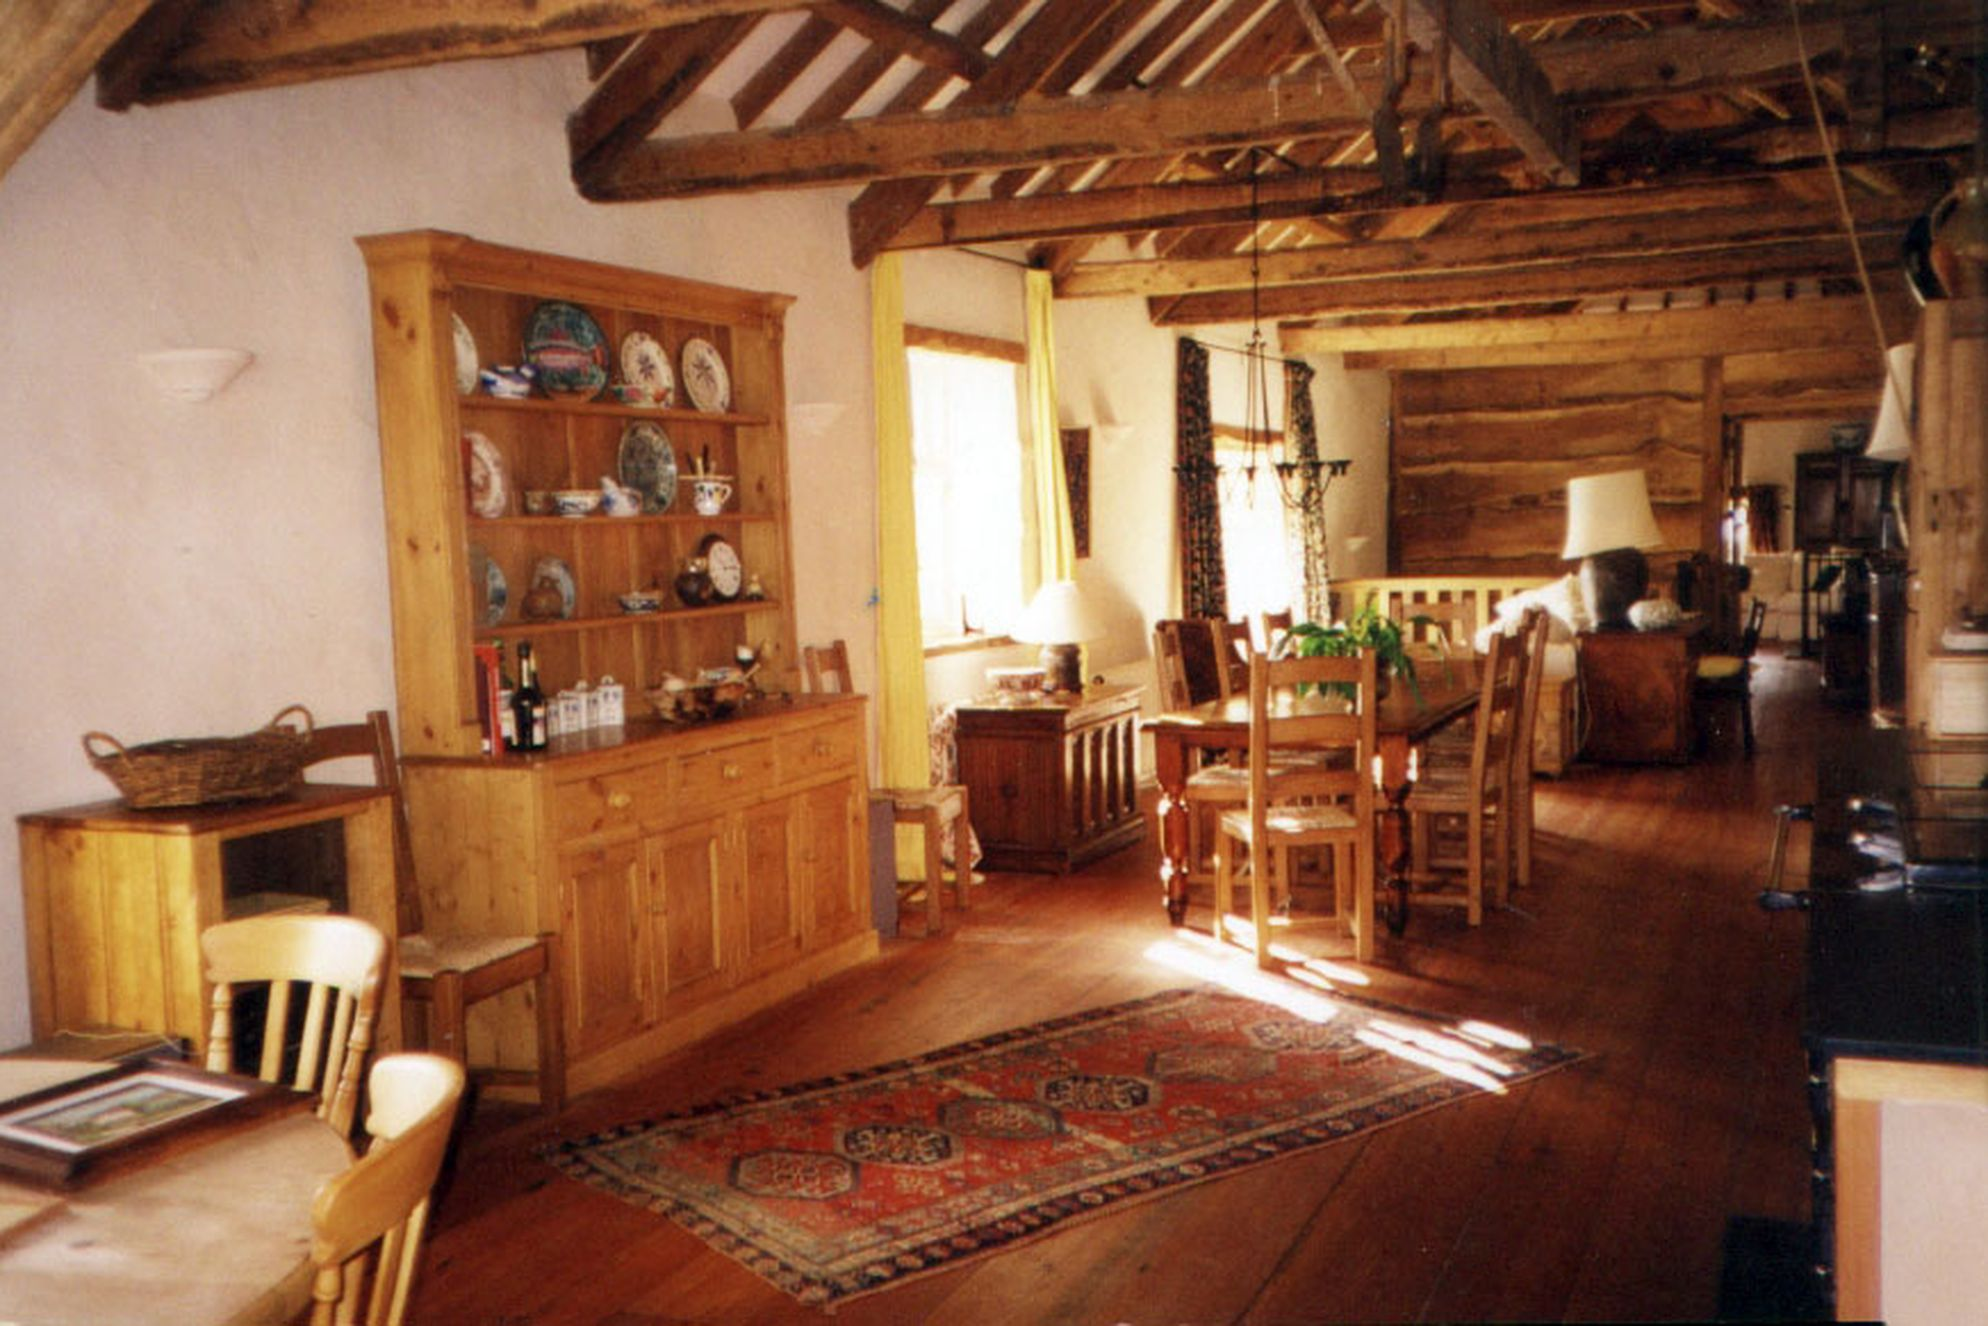 Open plan kitchen and dining room at East Penrest Farm in Cornwall